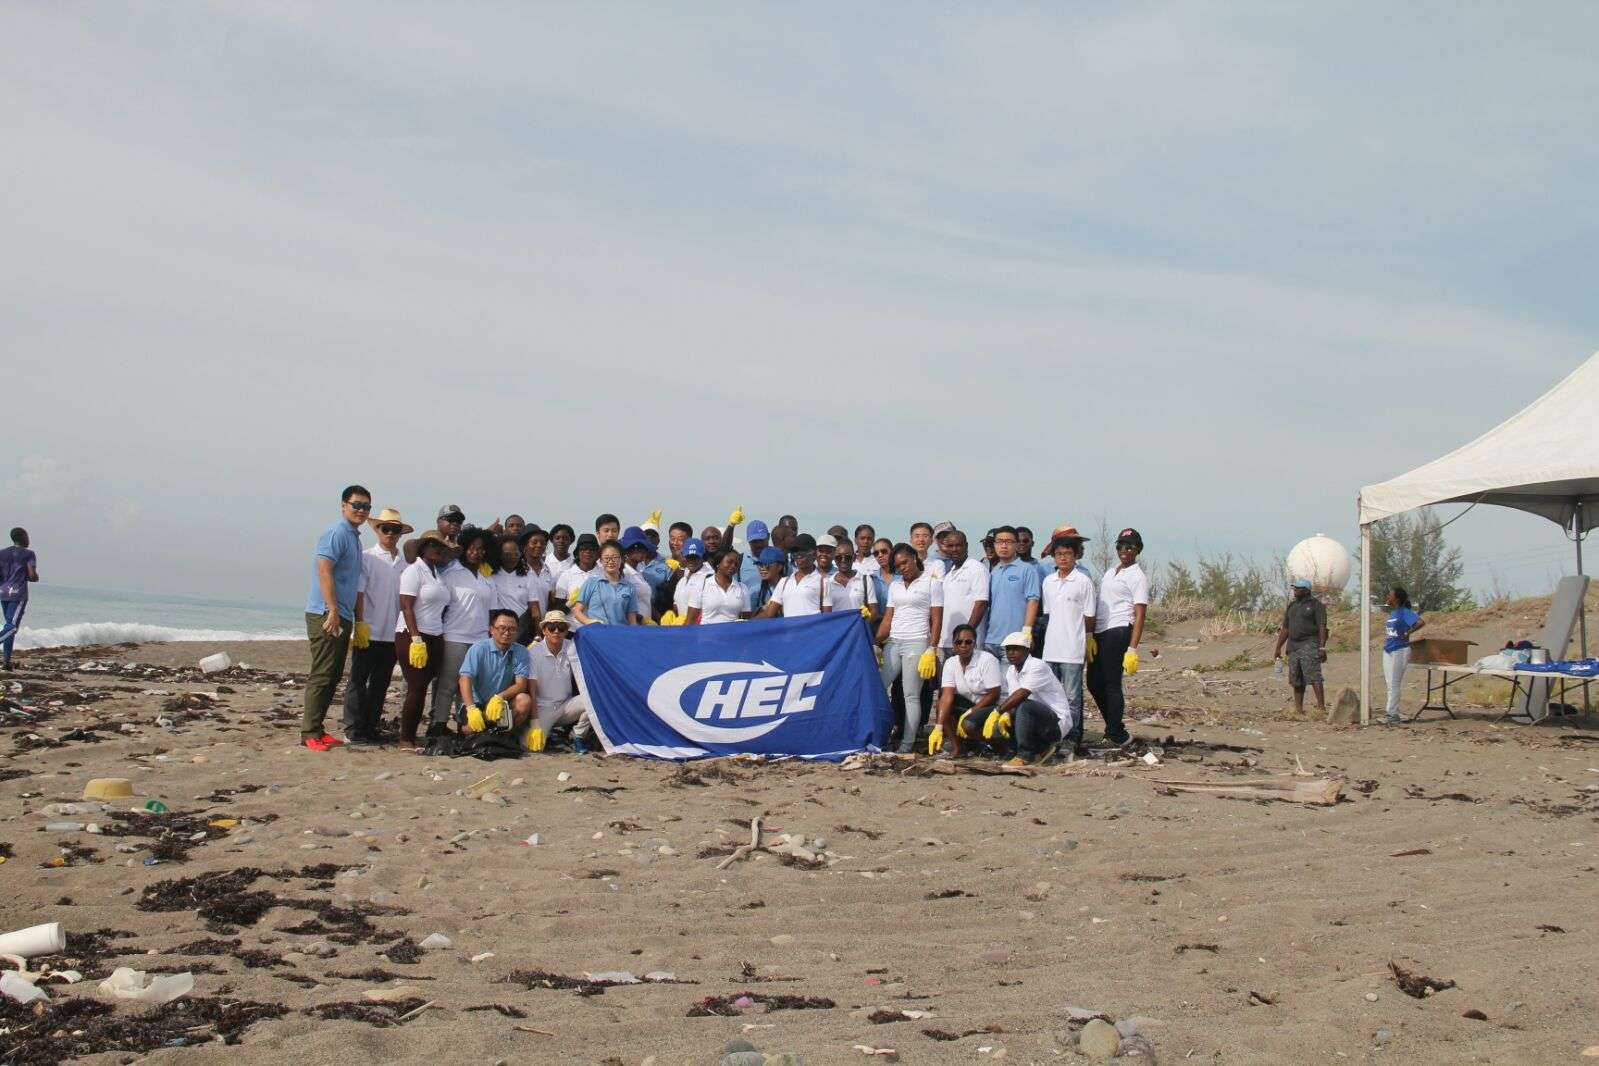 CHEC Staffers Support Coastal Cleanup